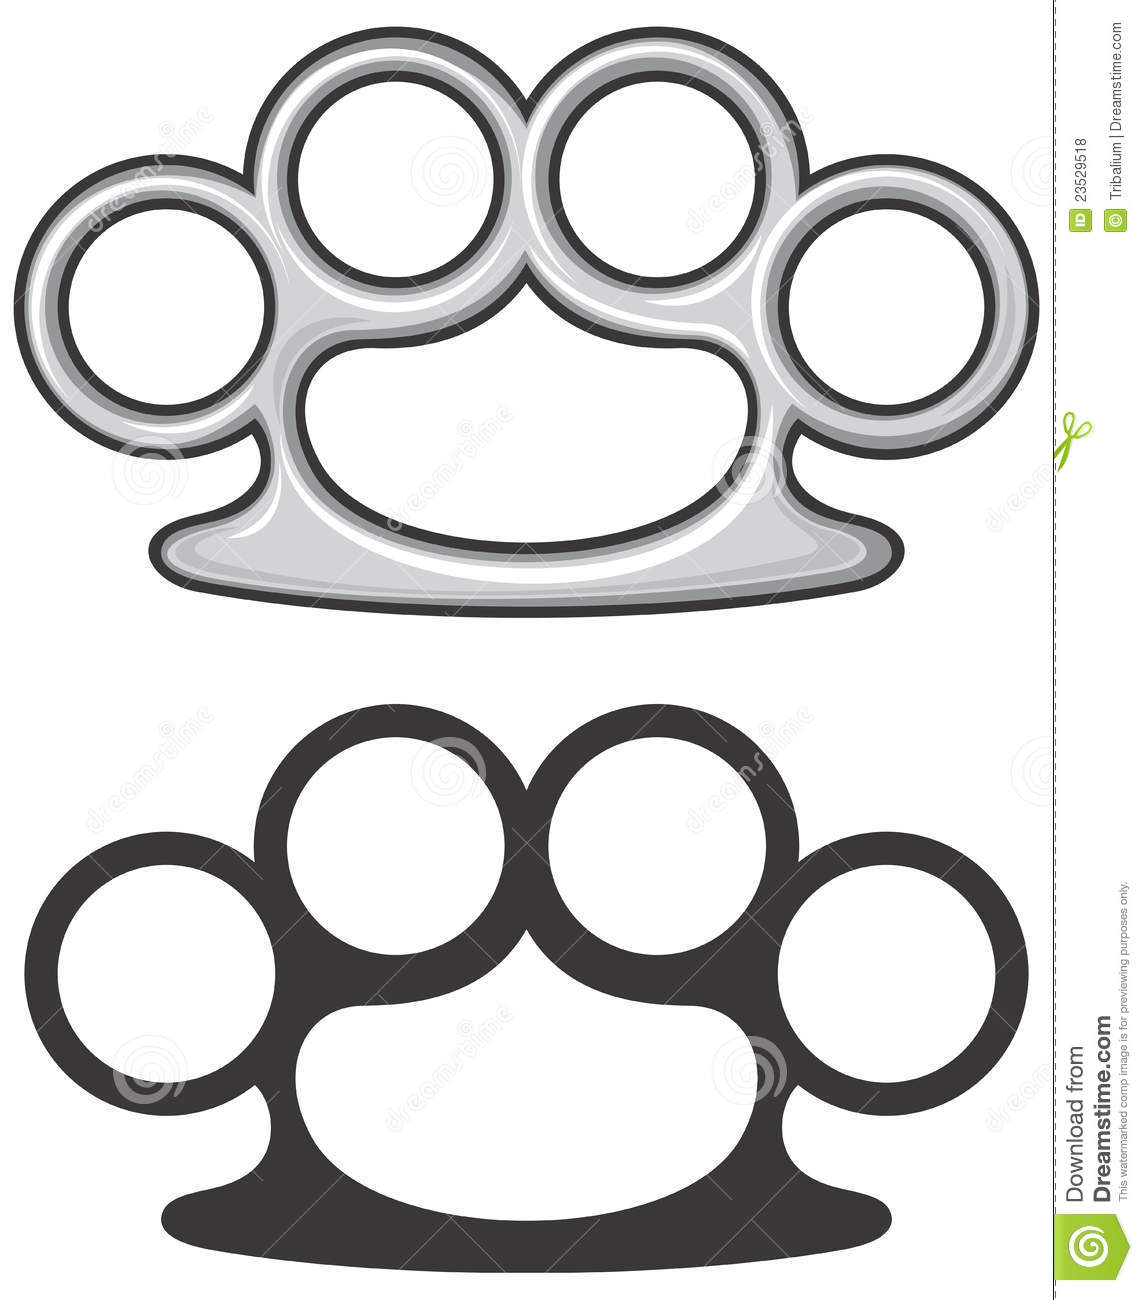 brass knuckles royalty free stock photos image 23529518